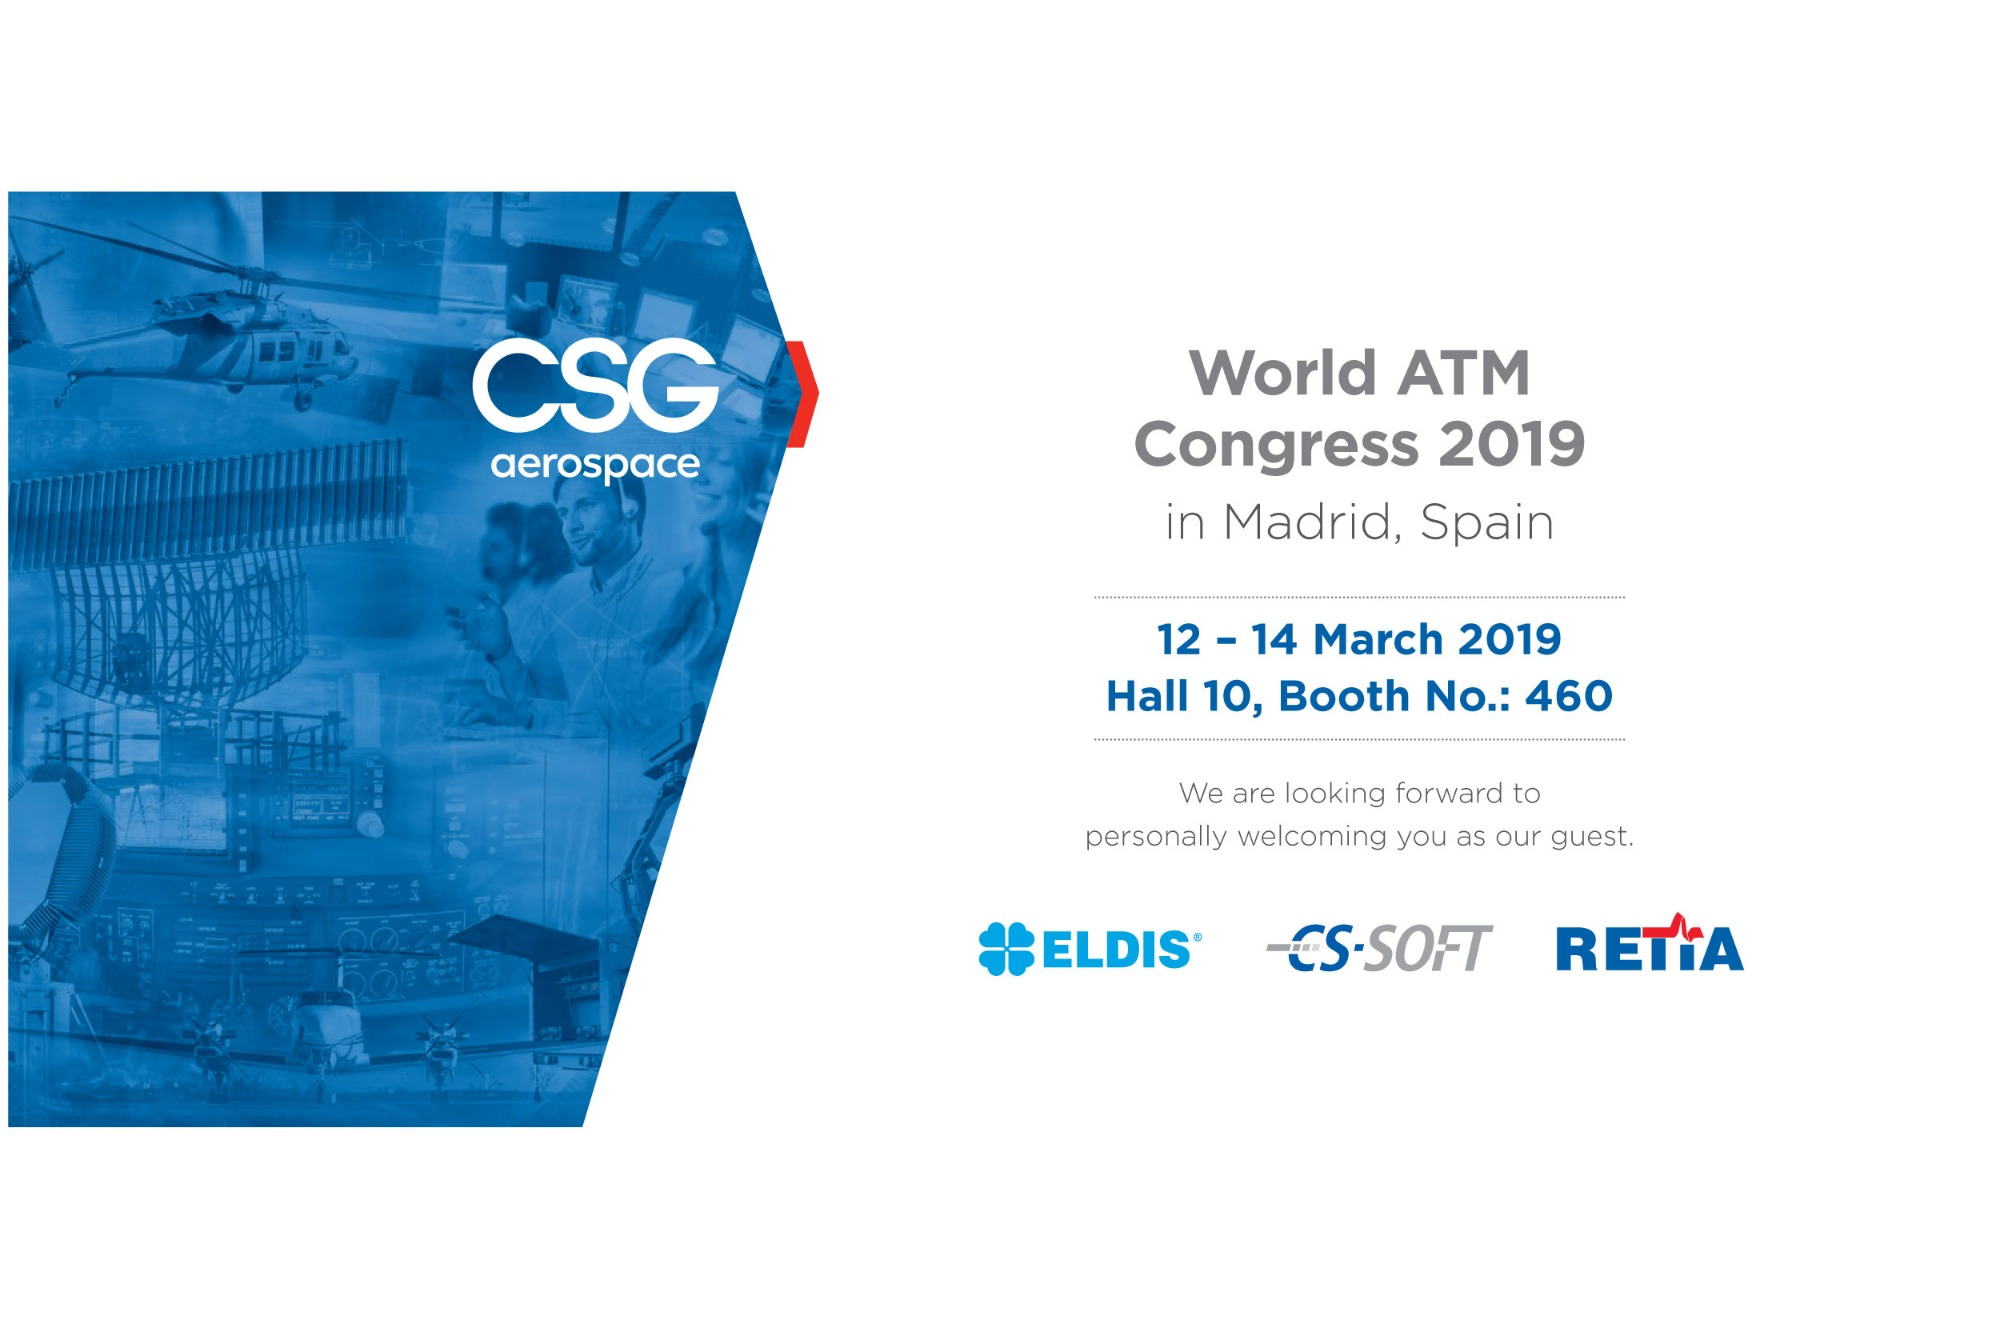 Czech companies CS SOFT, ELDIS and RETIA will jointly present their products at the 2019 World ATM Congress in Spain